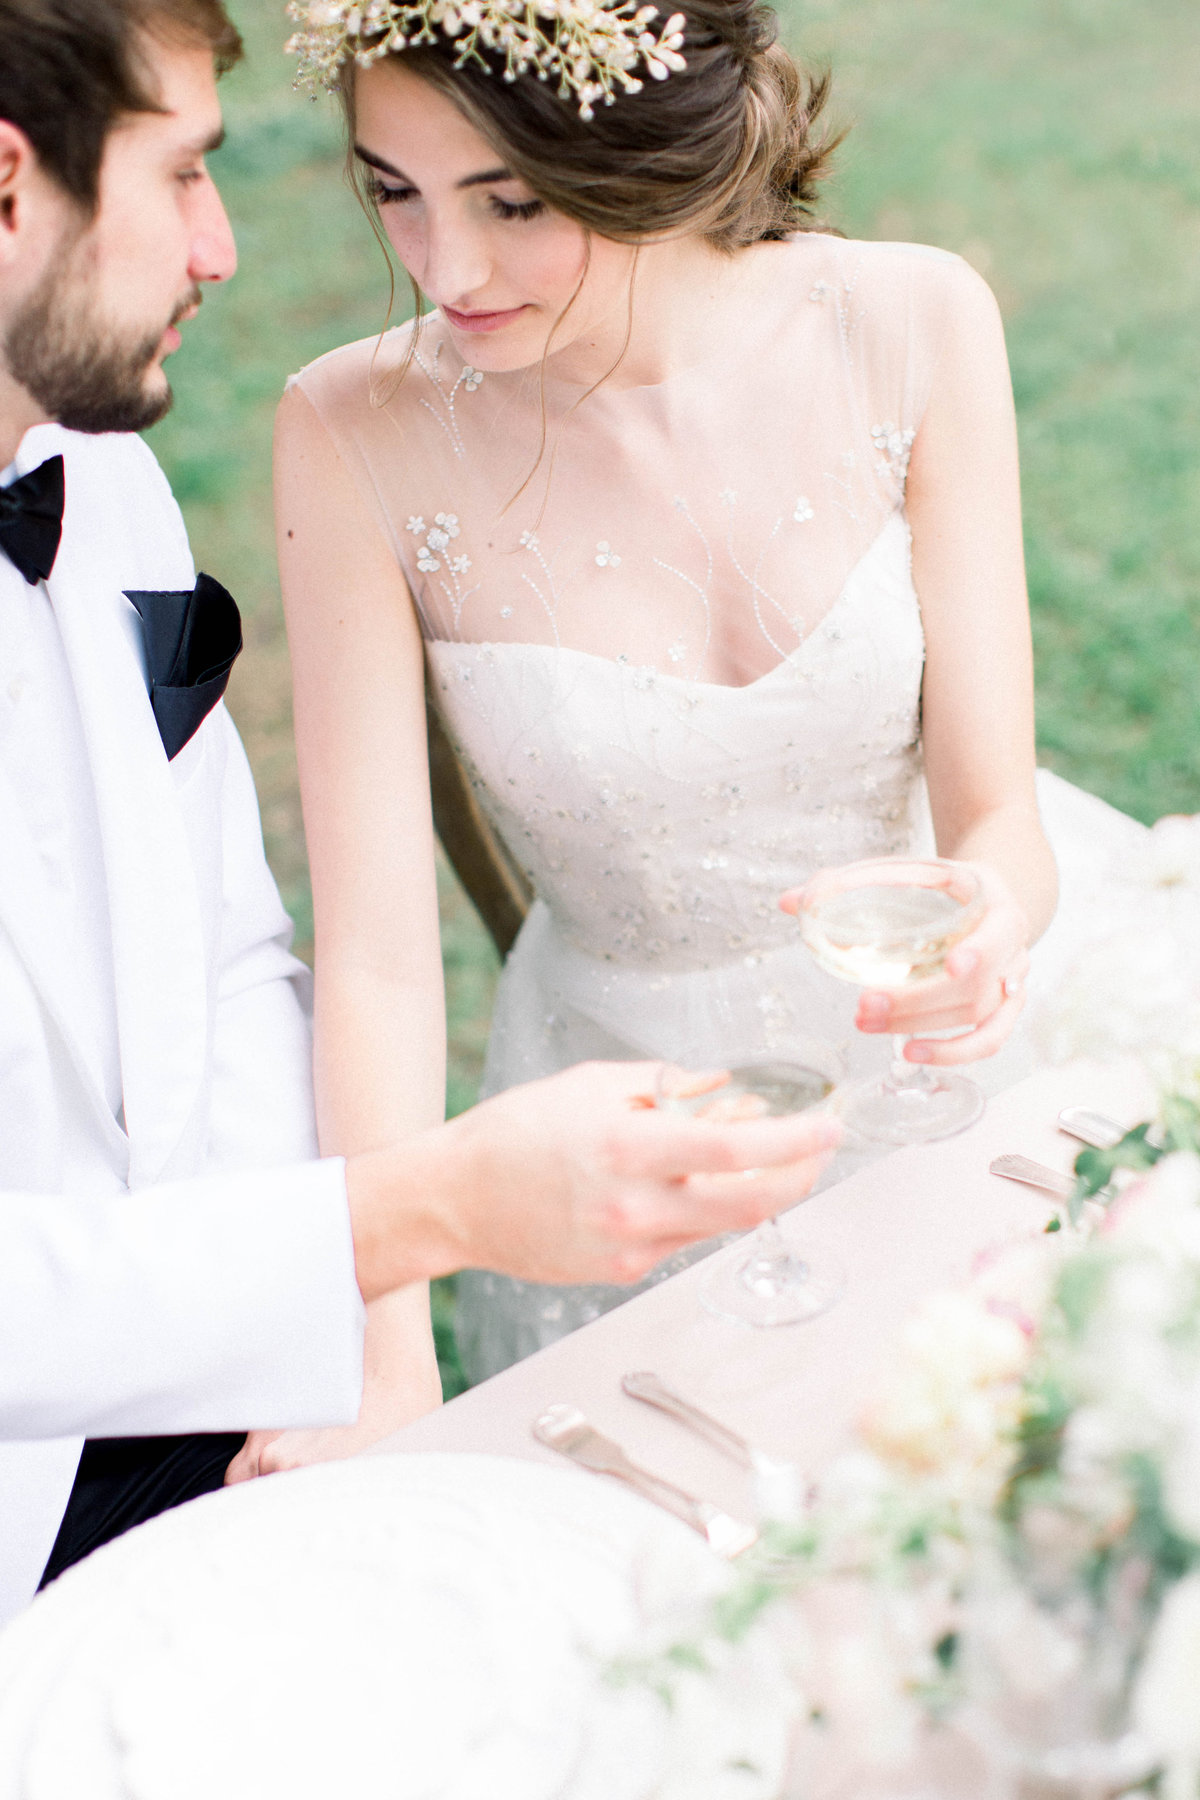 Raela is a fine art wedding planner in Charleston with a love for cohesive wedding design.